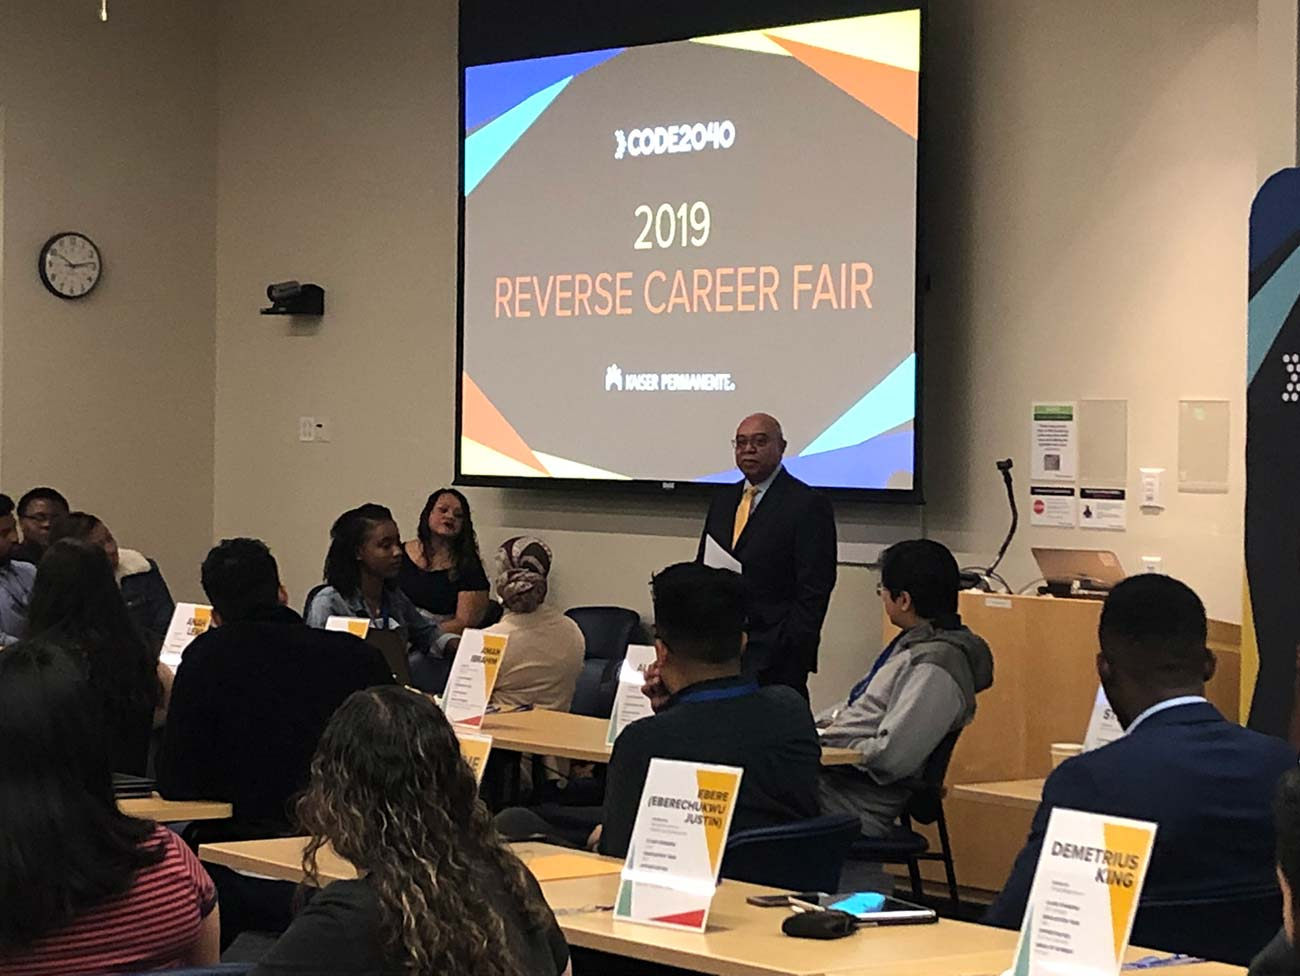 Dick Daniels speaking to a group of seated individuals in front of a screen that reads 2019 Reverse Career Fair